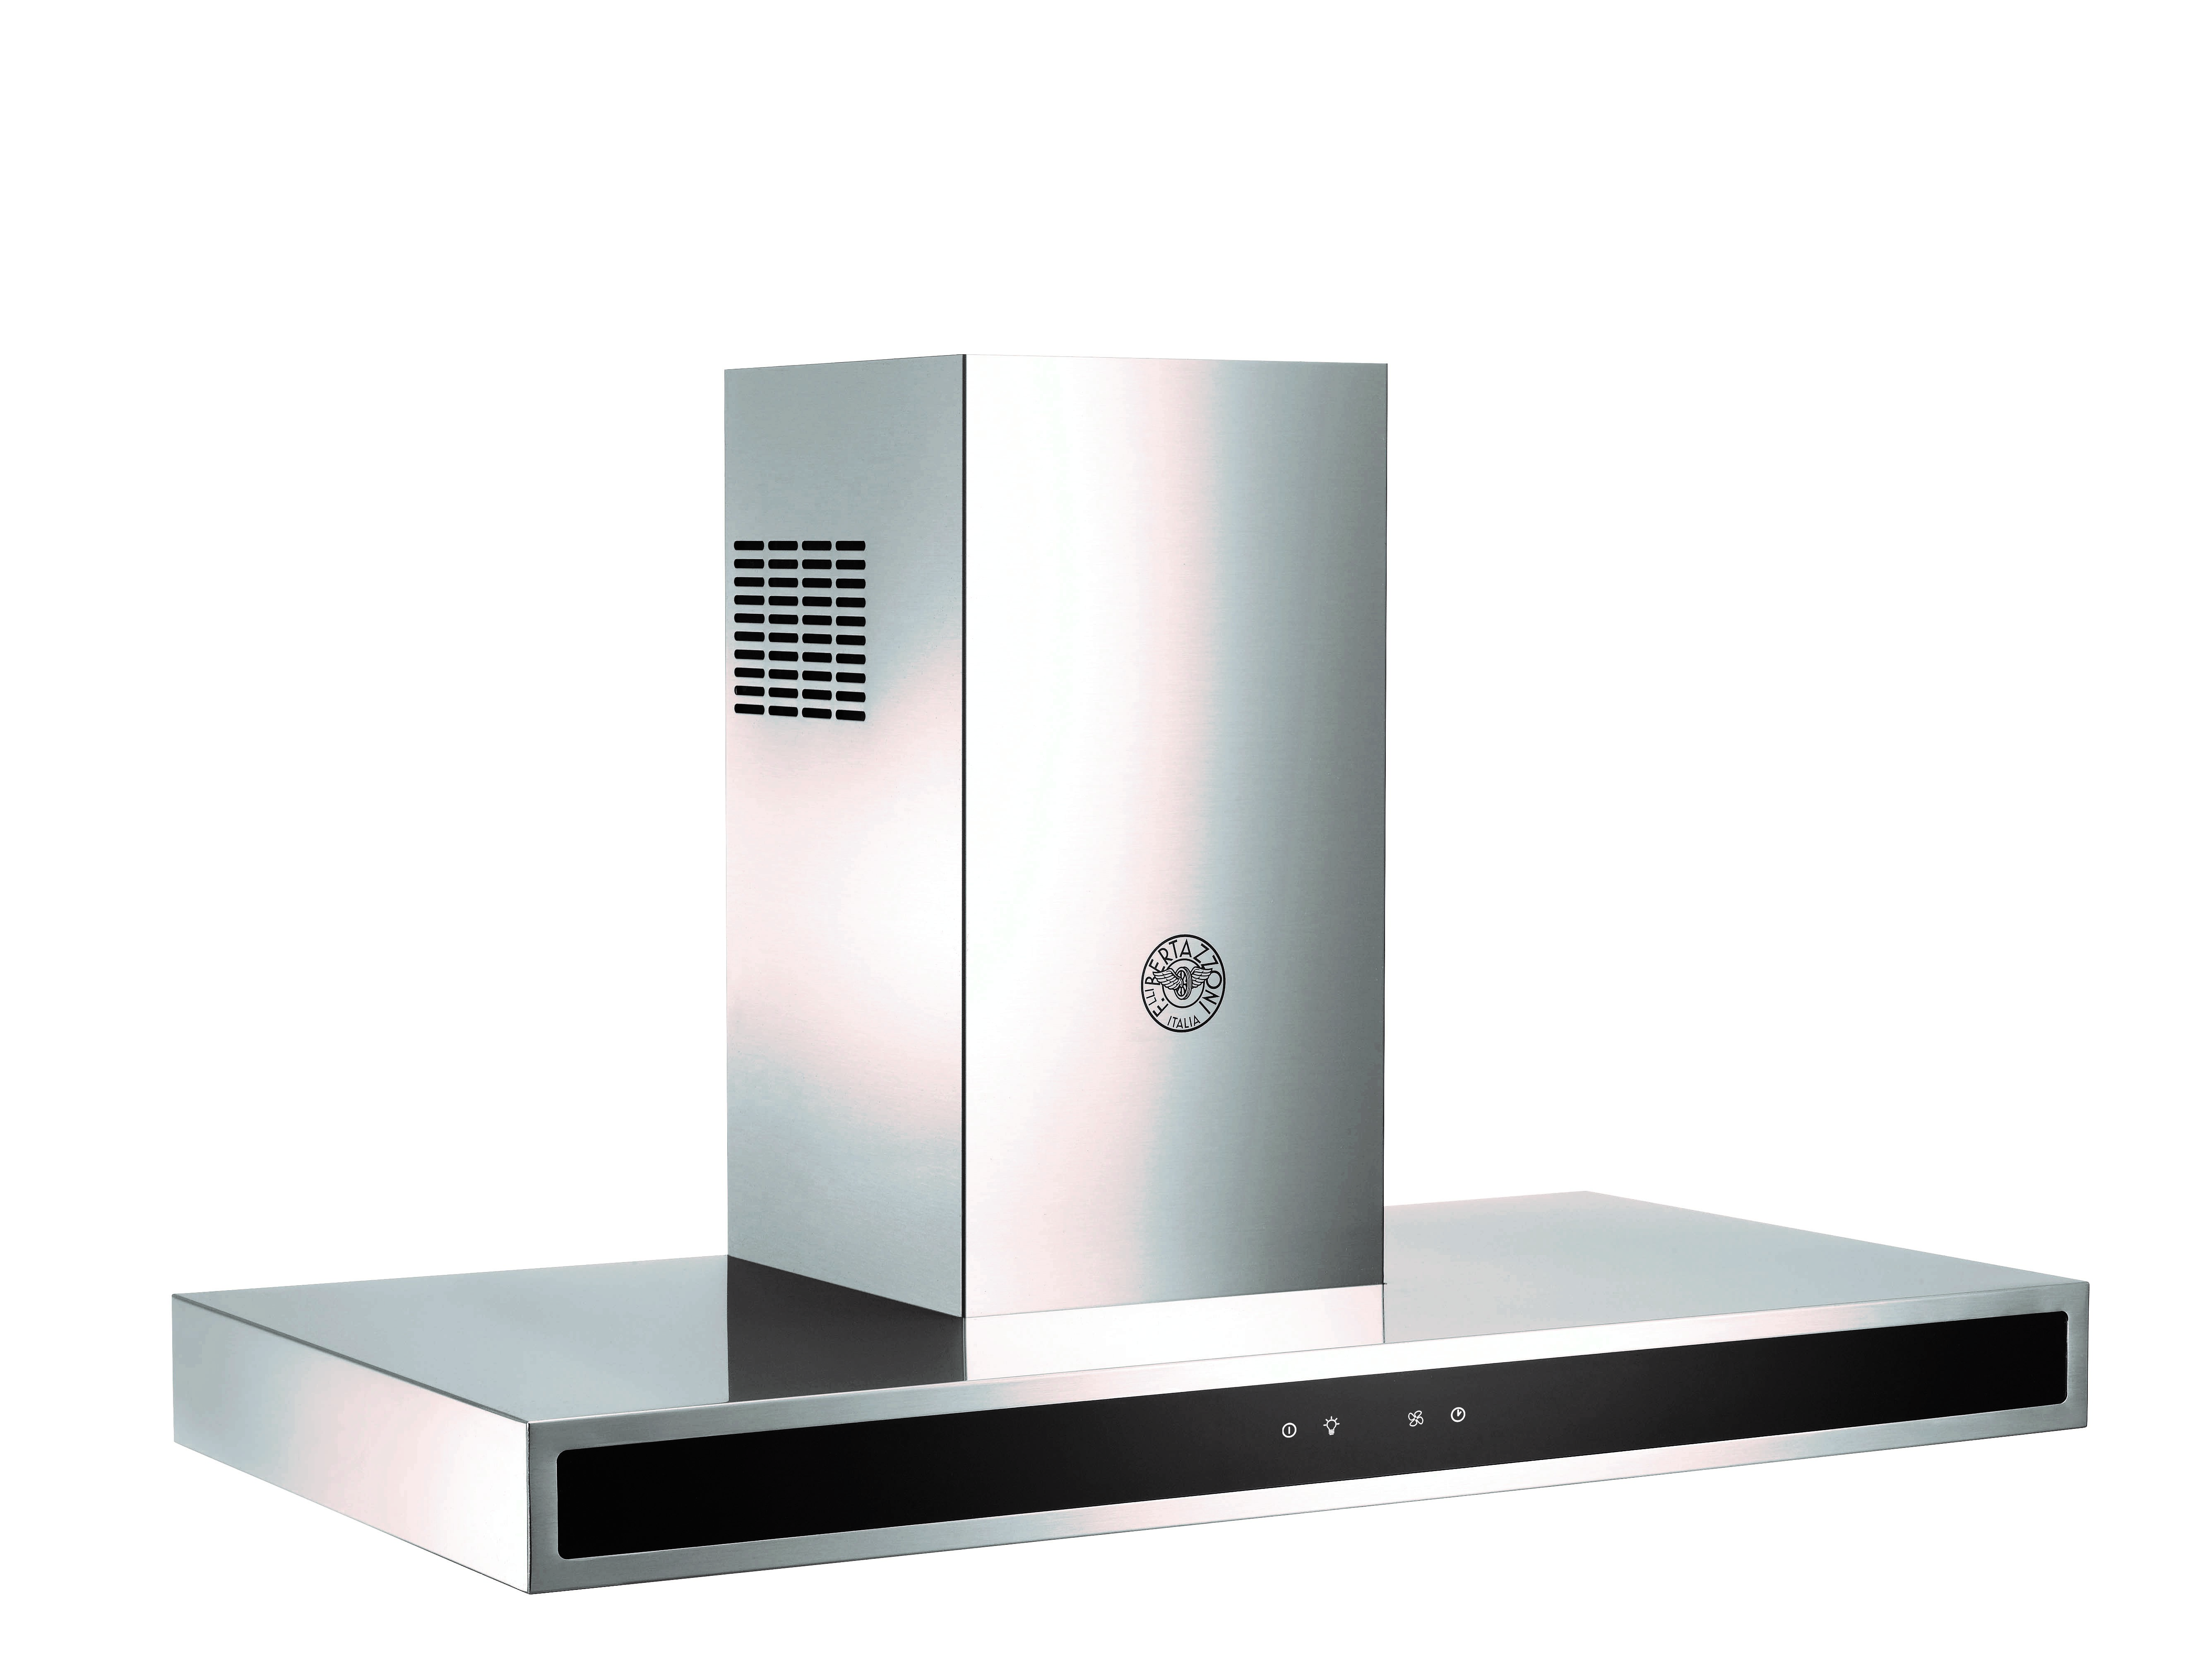 Bertazzoni Range hood KG36X in Stainless Steel color showcased by Corbeil Electro Store